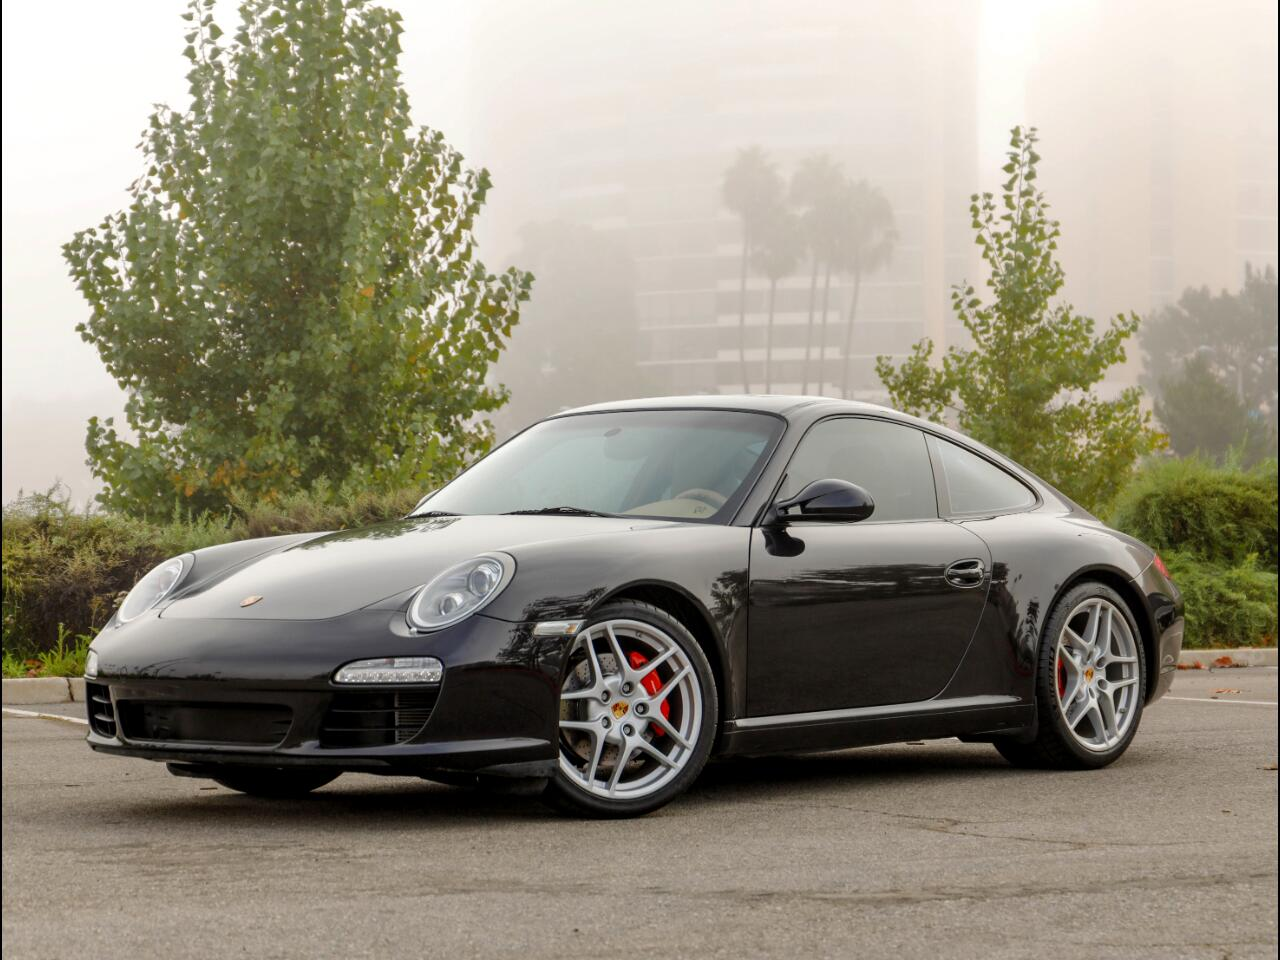 2010 Porsche 997.2 S Carrera S Coupe